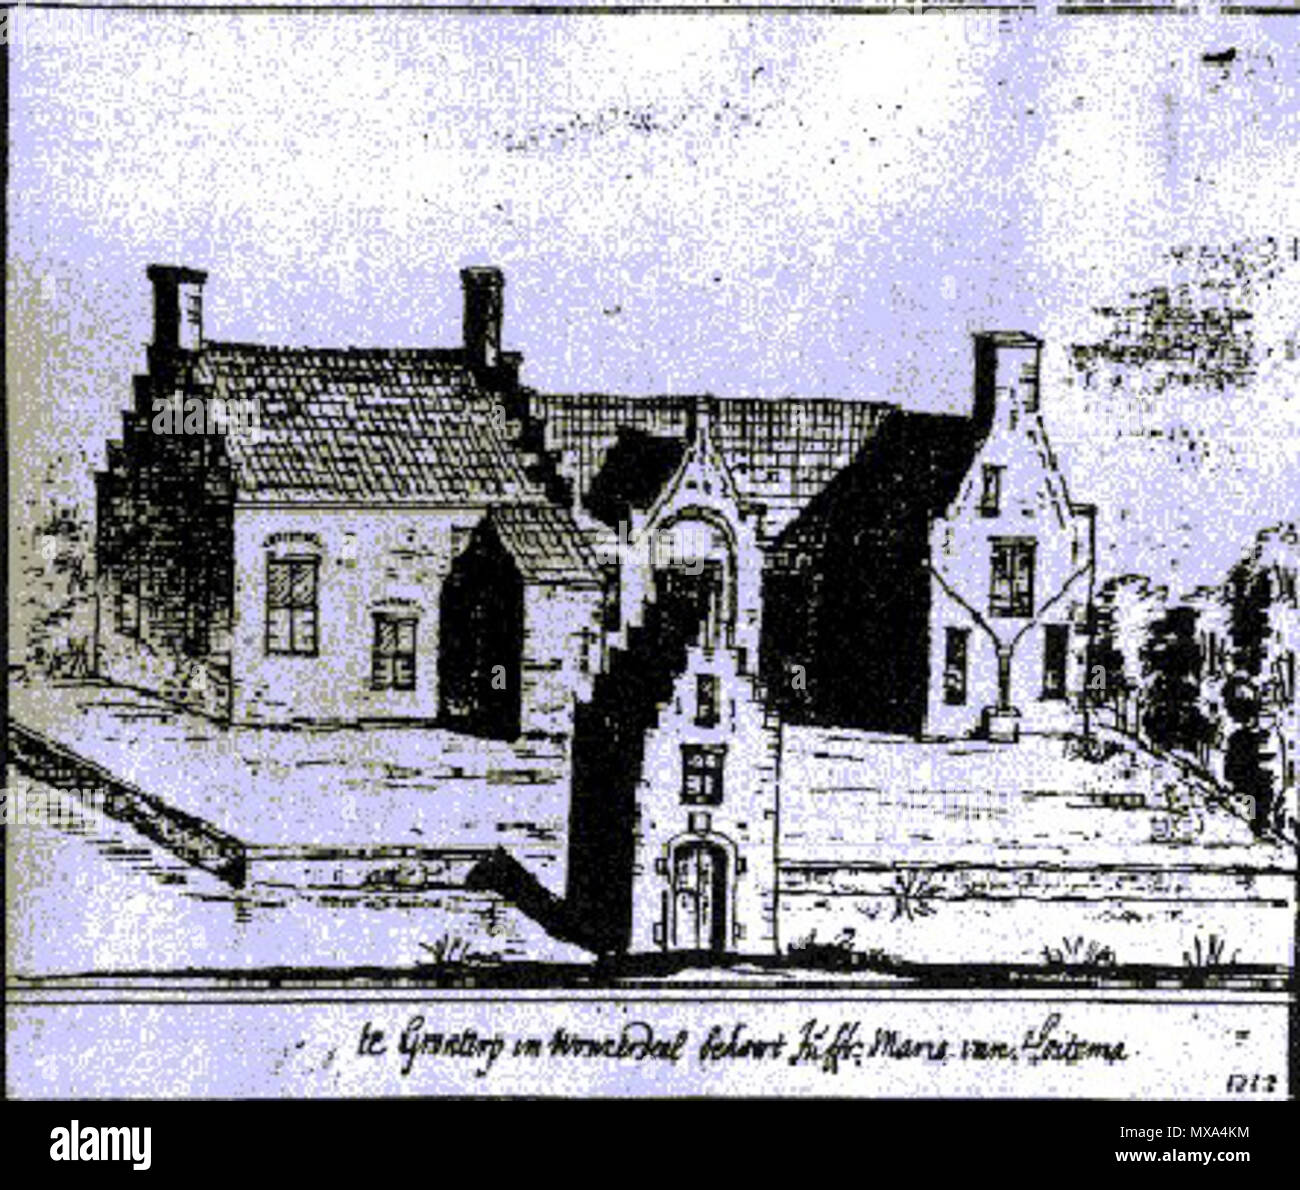 . Frysk: In print fan de Hoytema State út 1722, tekene troch Stellingwerf De tekening is yn it Printekabinet fan it Frysk Museum. Nederlands: Een prent van de Hoytema State uit 1722, getekend door Stellingwerf. De tekening bevindt zich in het Prentenkabinet in het Fries Museum te Leeuwarden. 26 December 2006 (original upload date). The original uploader was Horus at Dutch Wikipedia 286 Hoytema State - Stock Image